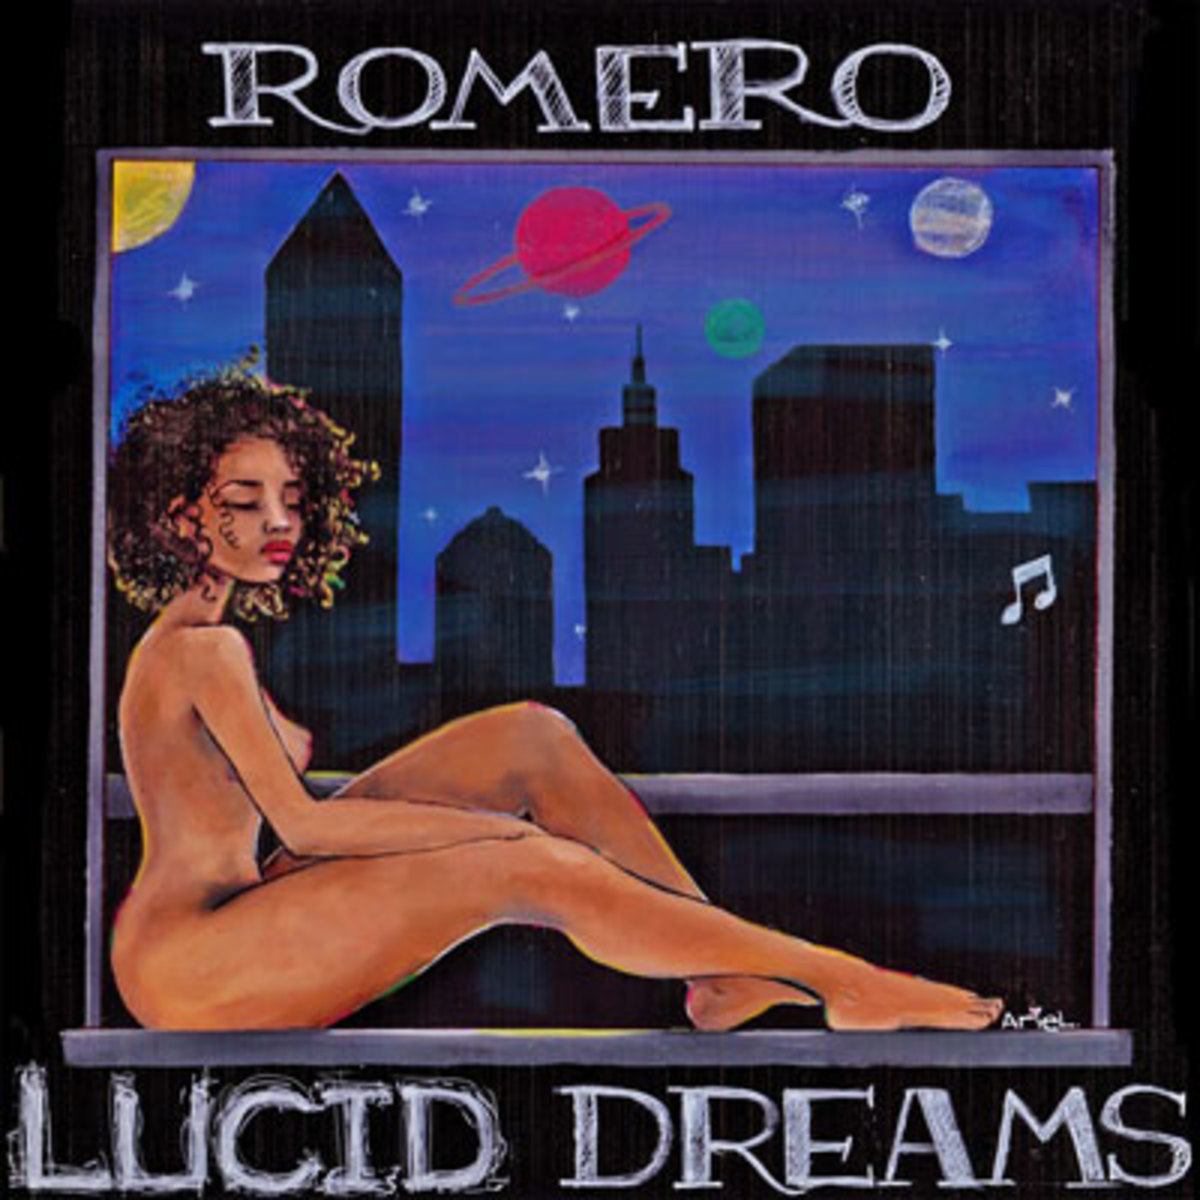 romero-luciddreams.jpg